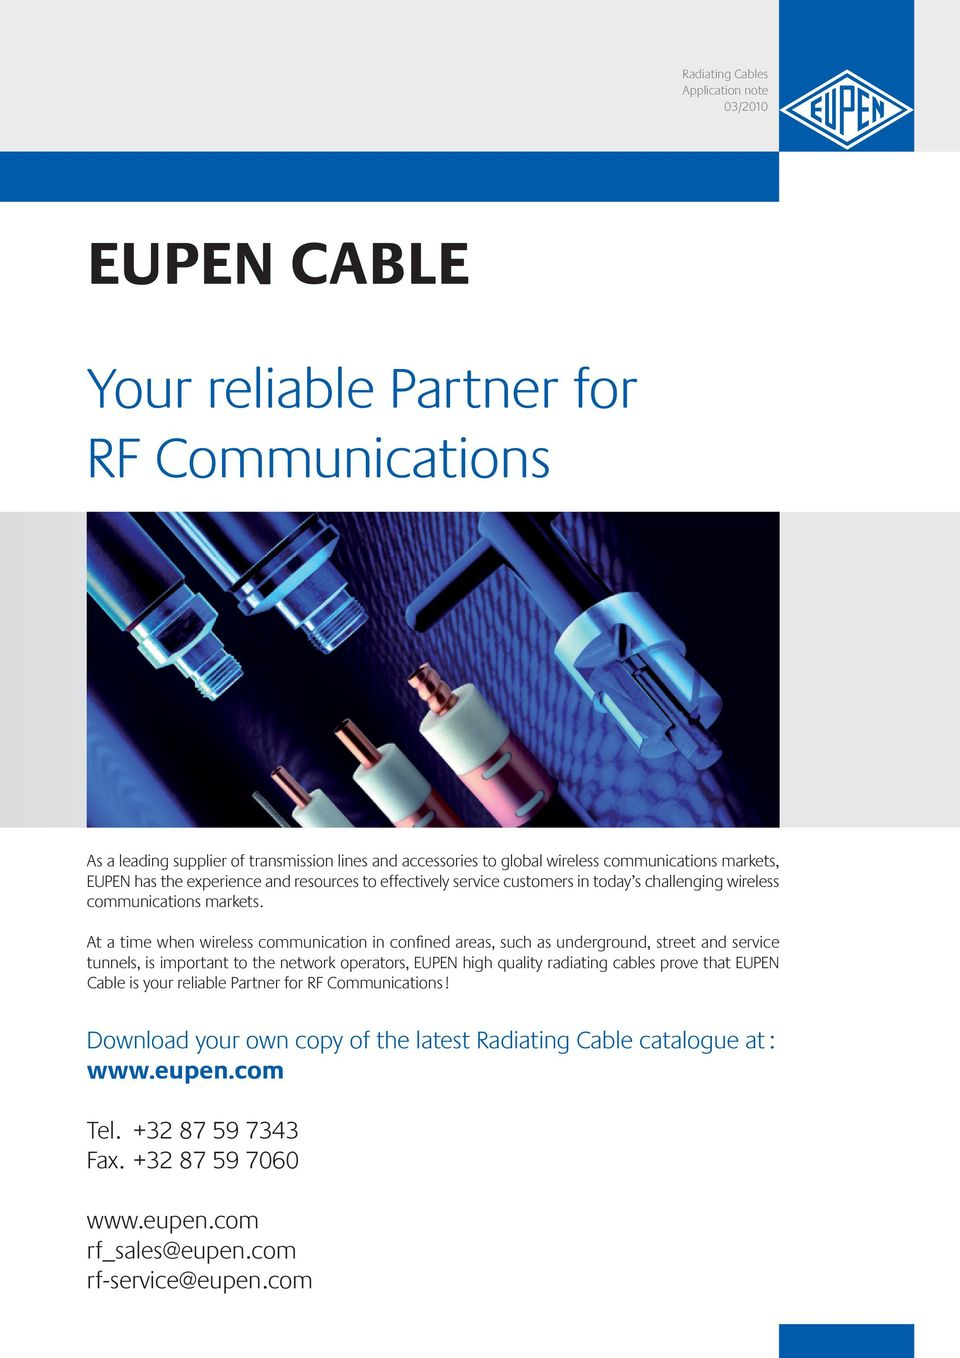 At a time when wireless communication in confined areas, such as underground, street and service tunnels, is important to the network operators, EUPEN high quality radiating